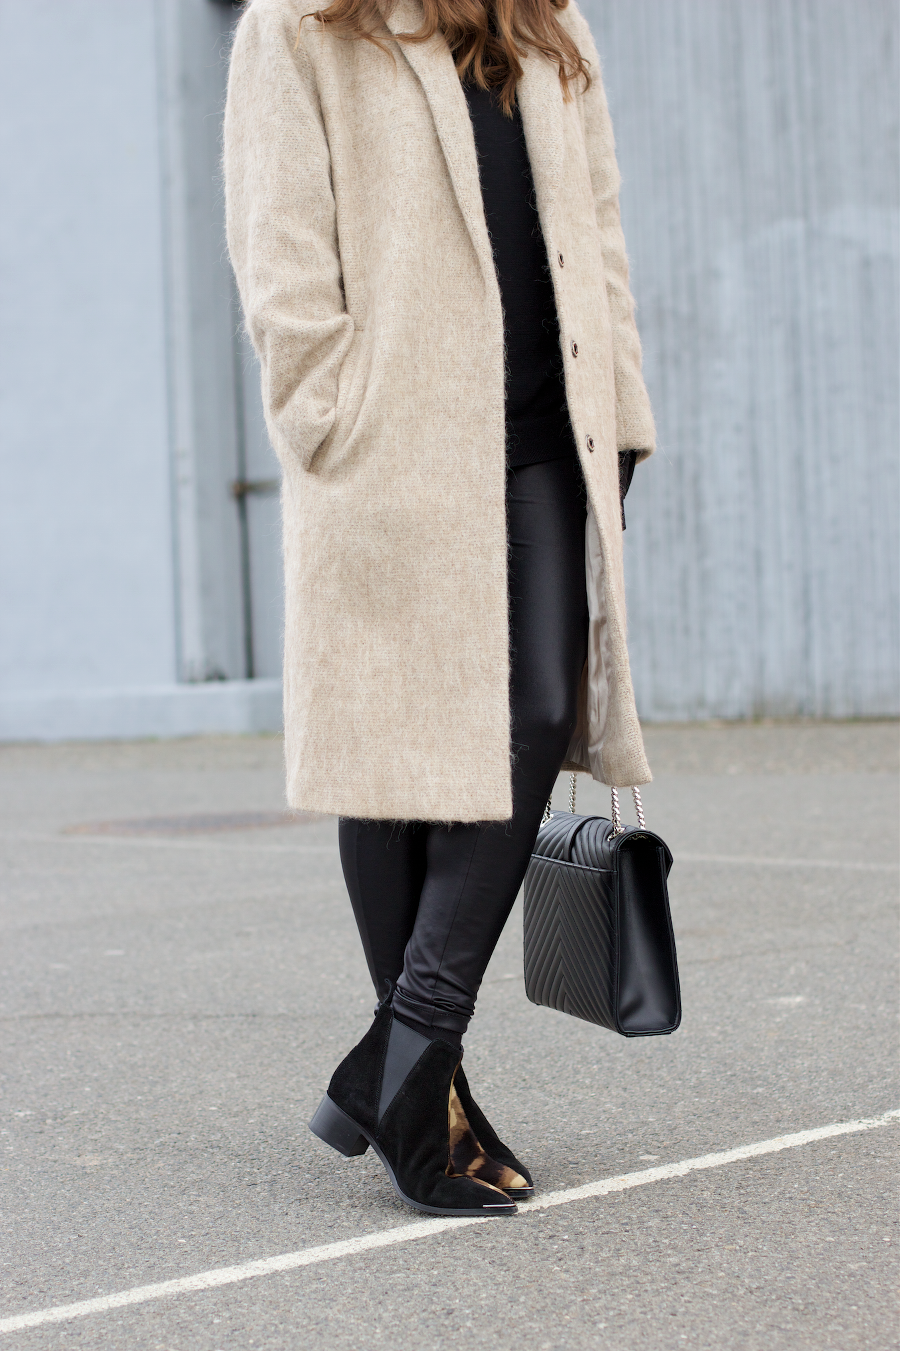 THE DASHING RIDER – A Personal Style & Lifestyle Blog | PERSONAL STYLE | Asos Nude Camel Coat Asos Leather Leggings Black Floppy Hat Acne Jensen Boots YSL Bag Outfit